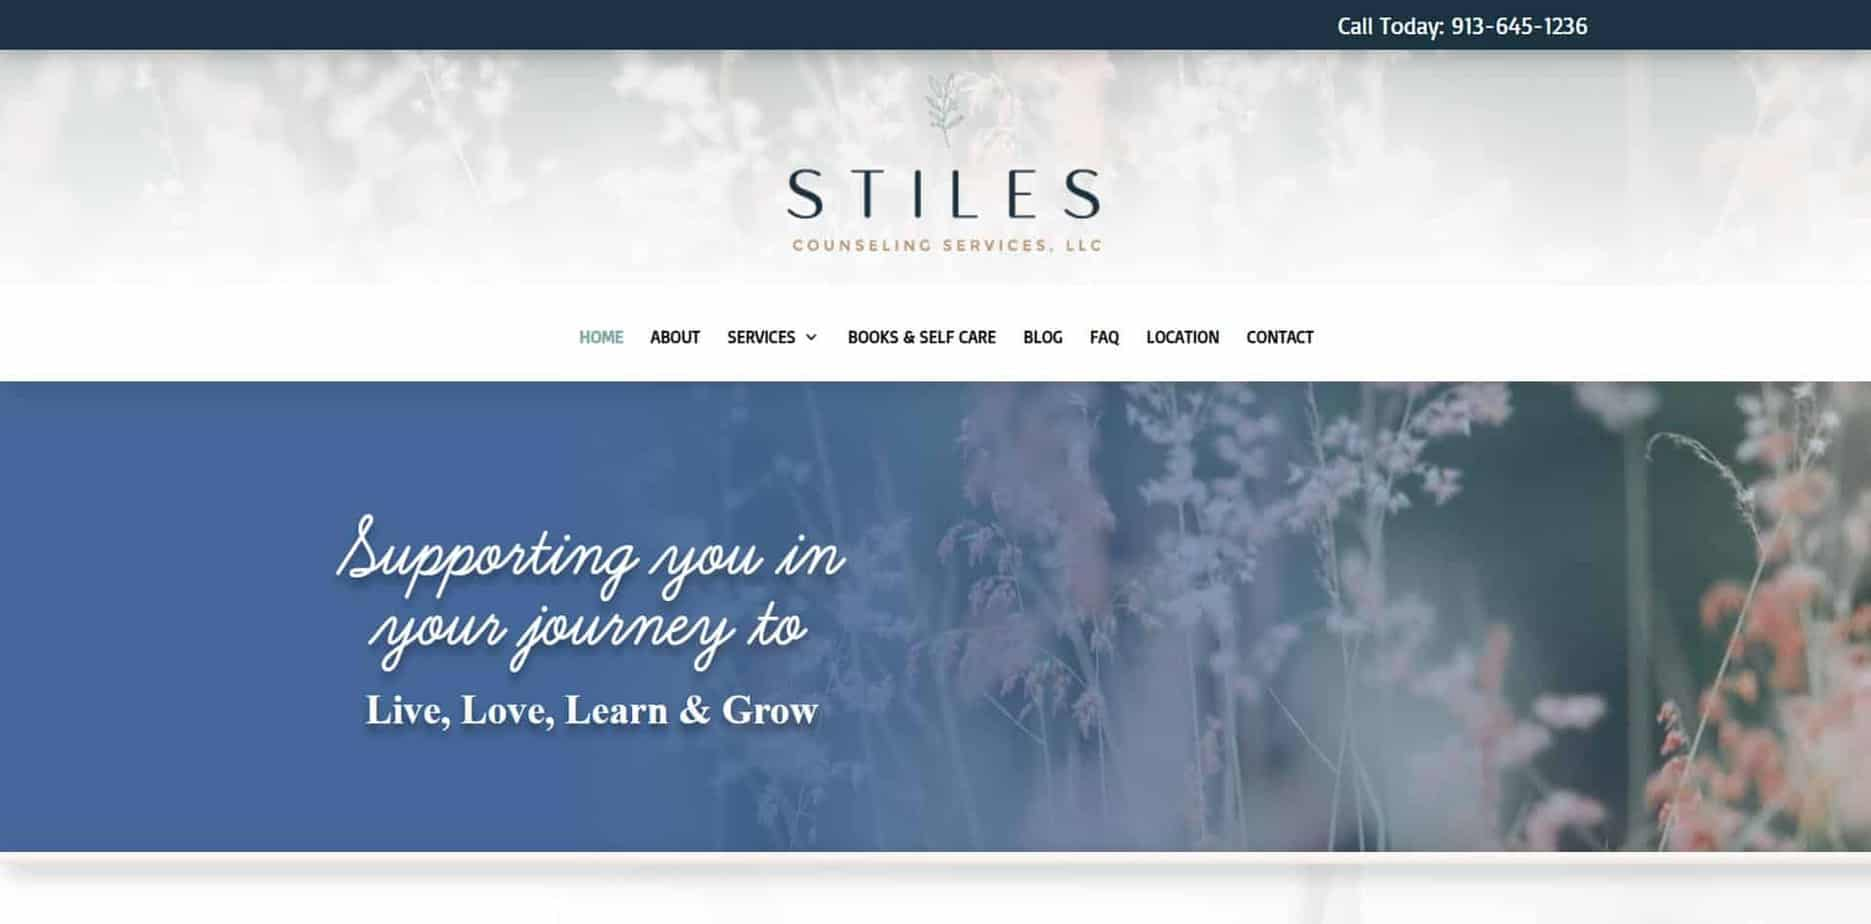 Stiles Counseling Services custom website design by MKS Web Design